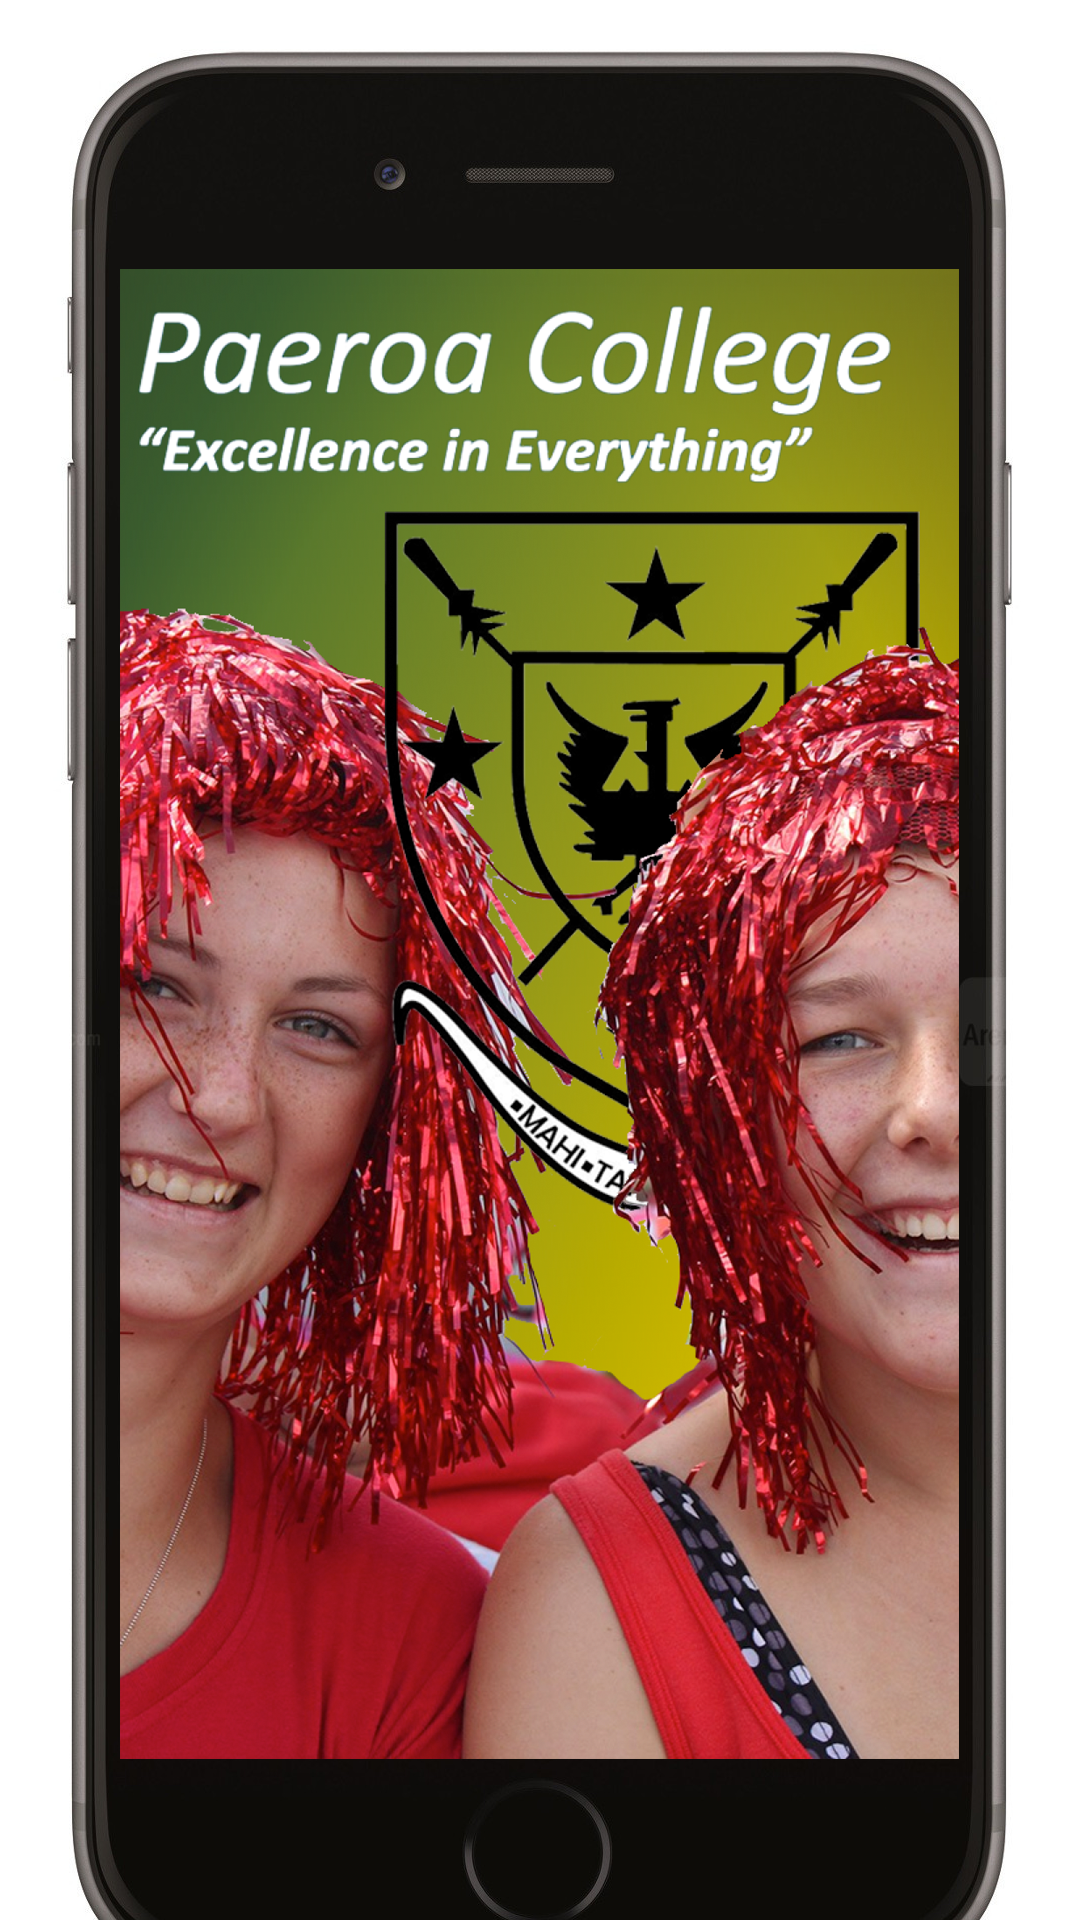 Paeroa College Apps - Now Available